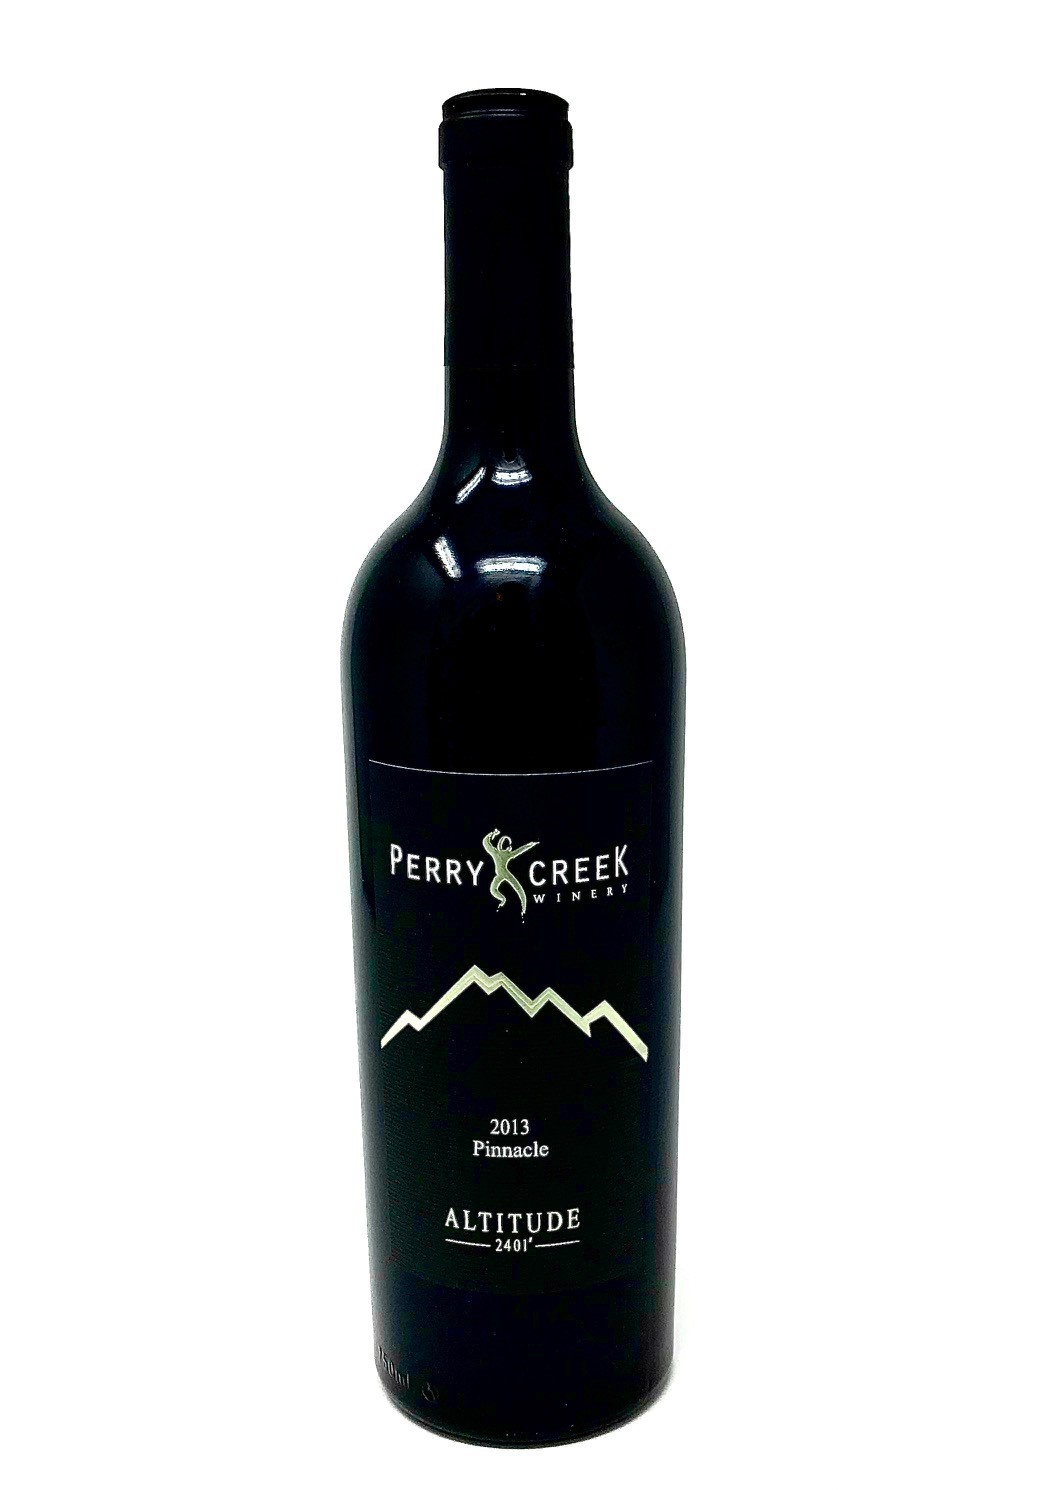 2013 Altitude Pinnacle